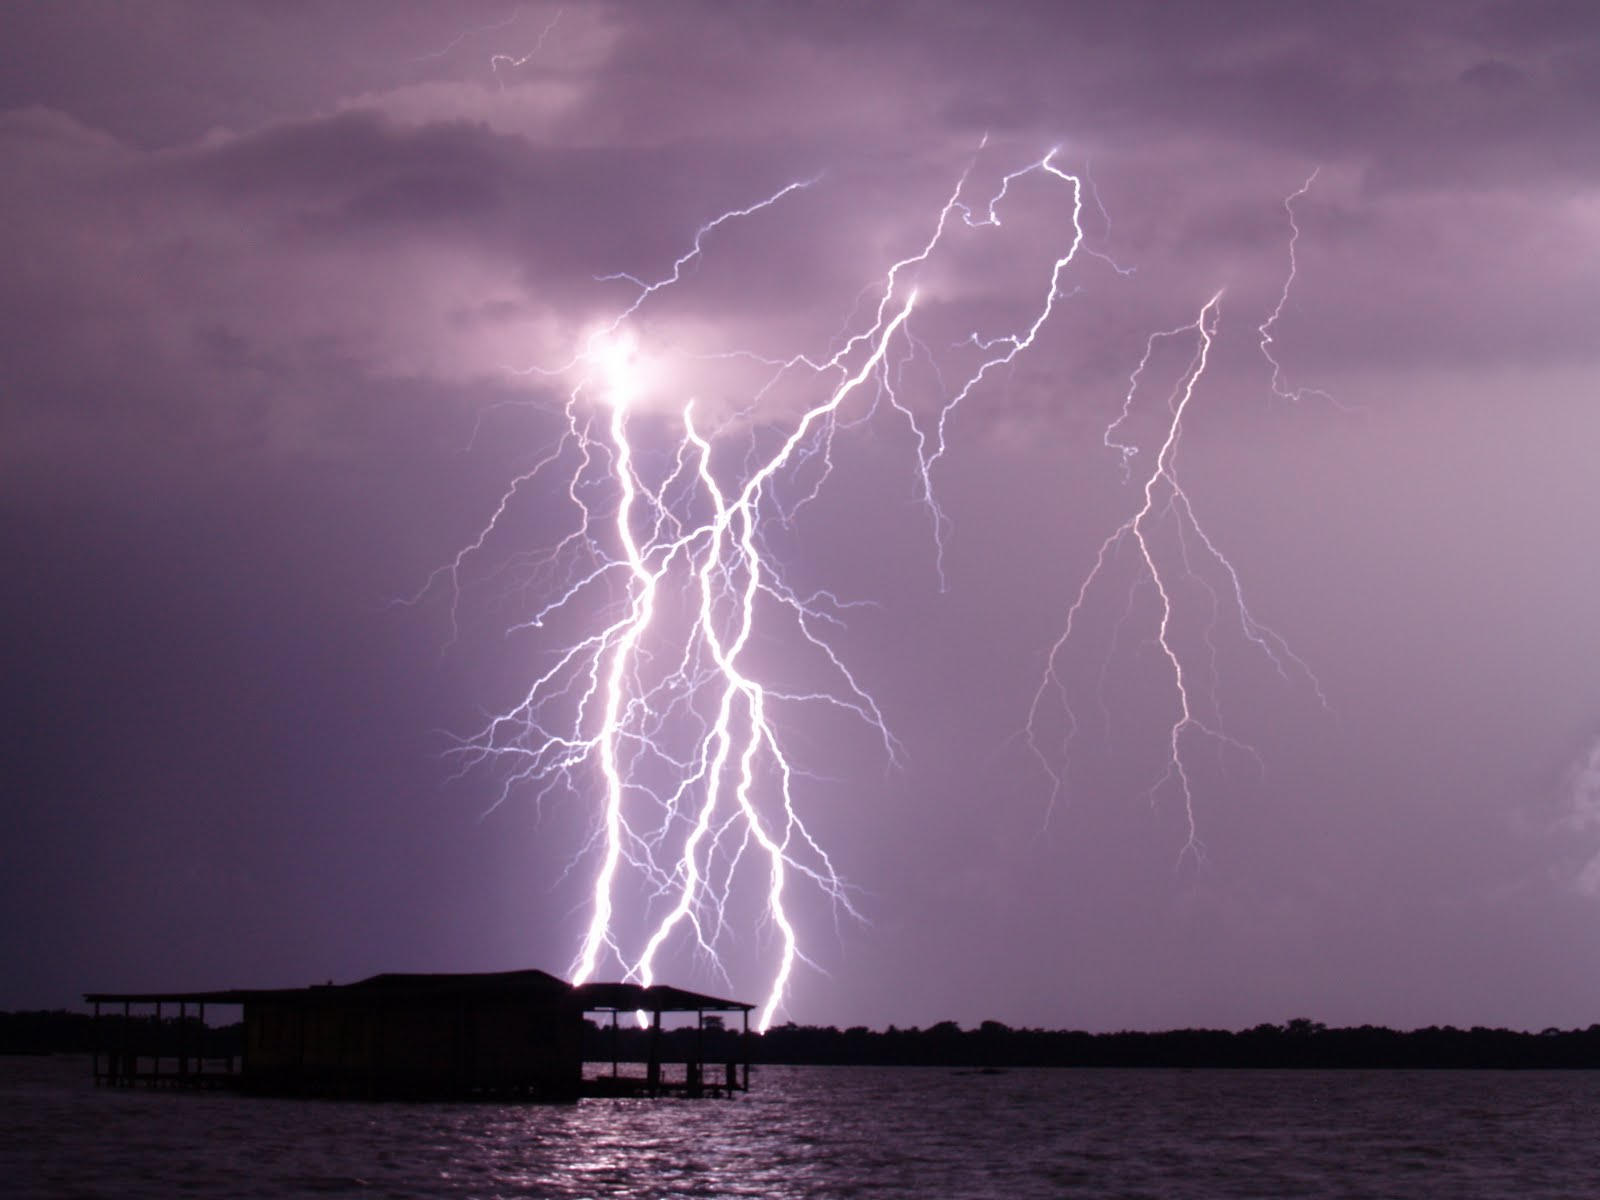 Natural Phenomenon, The Catatumbo Lightning, Venezuela, Night view